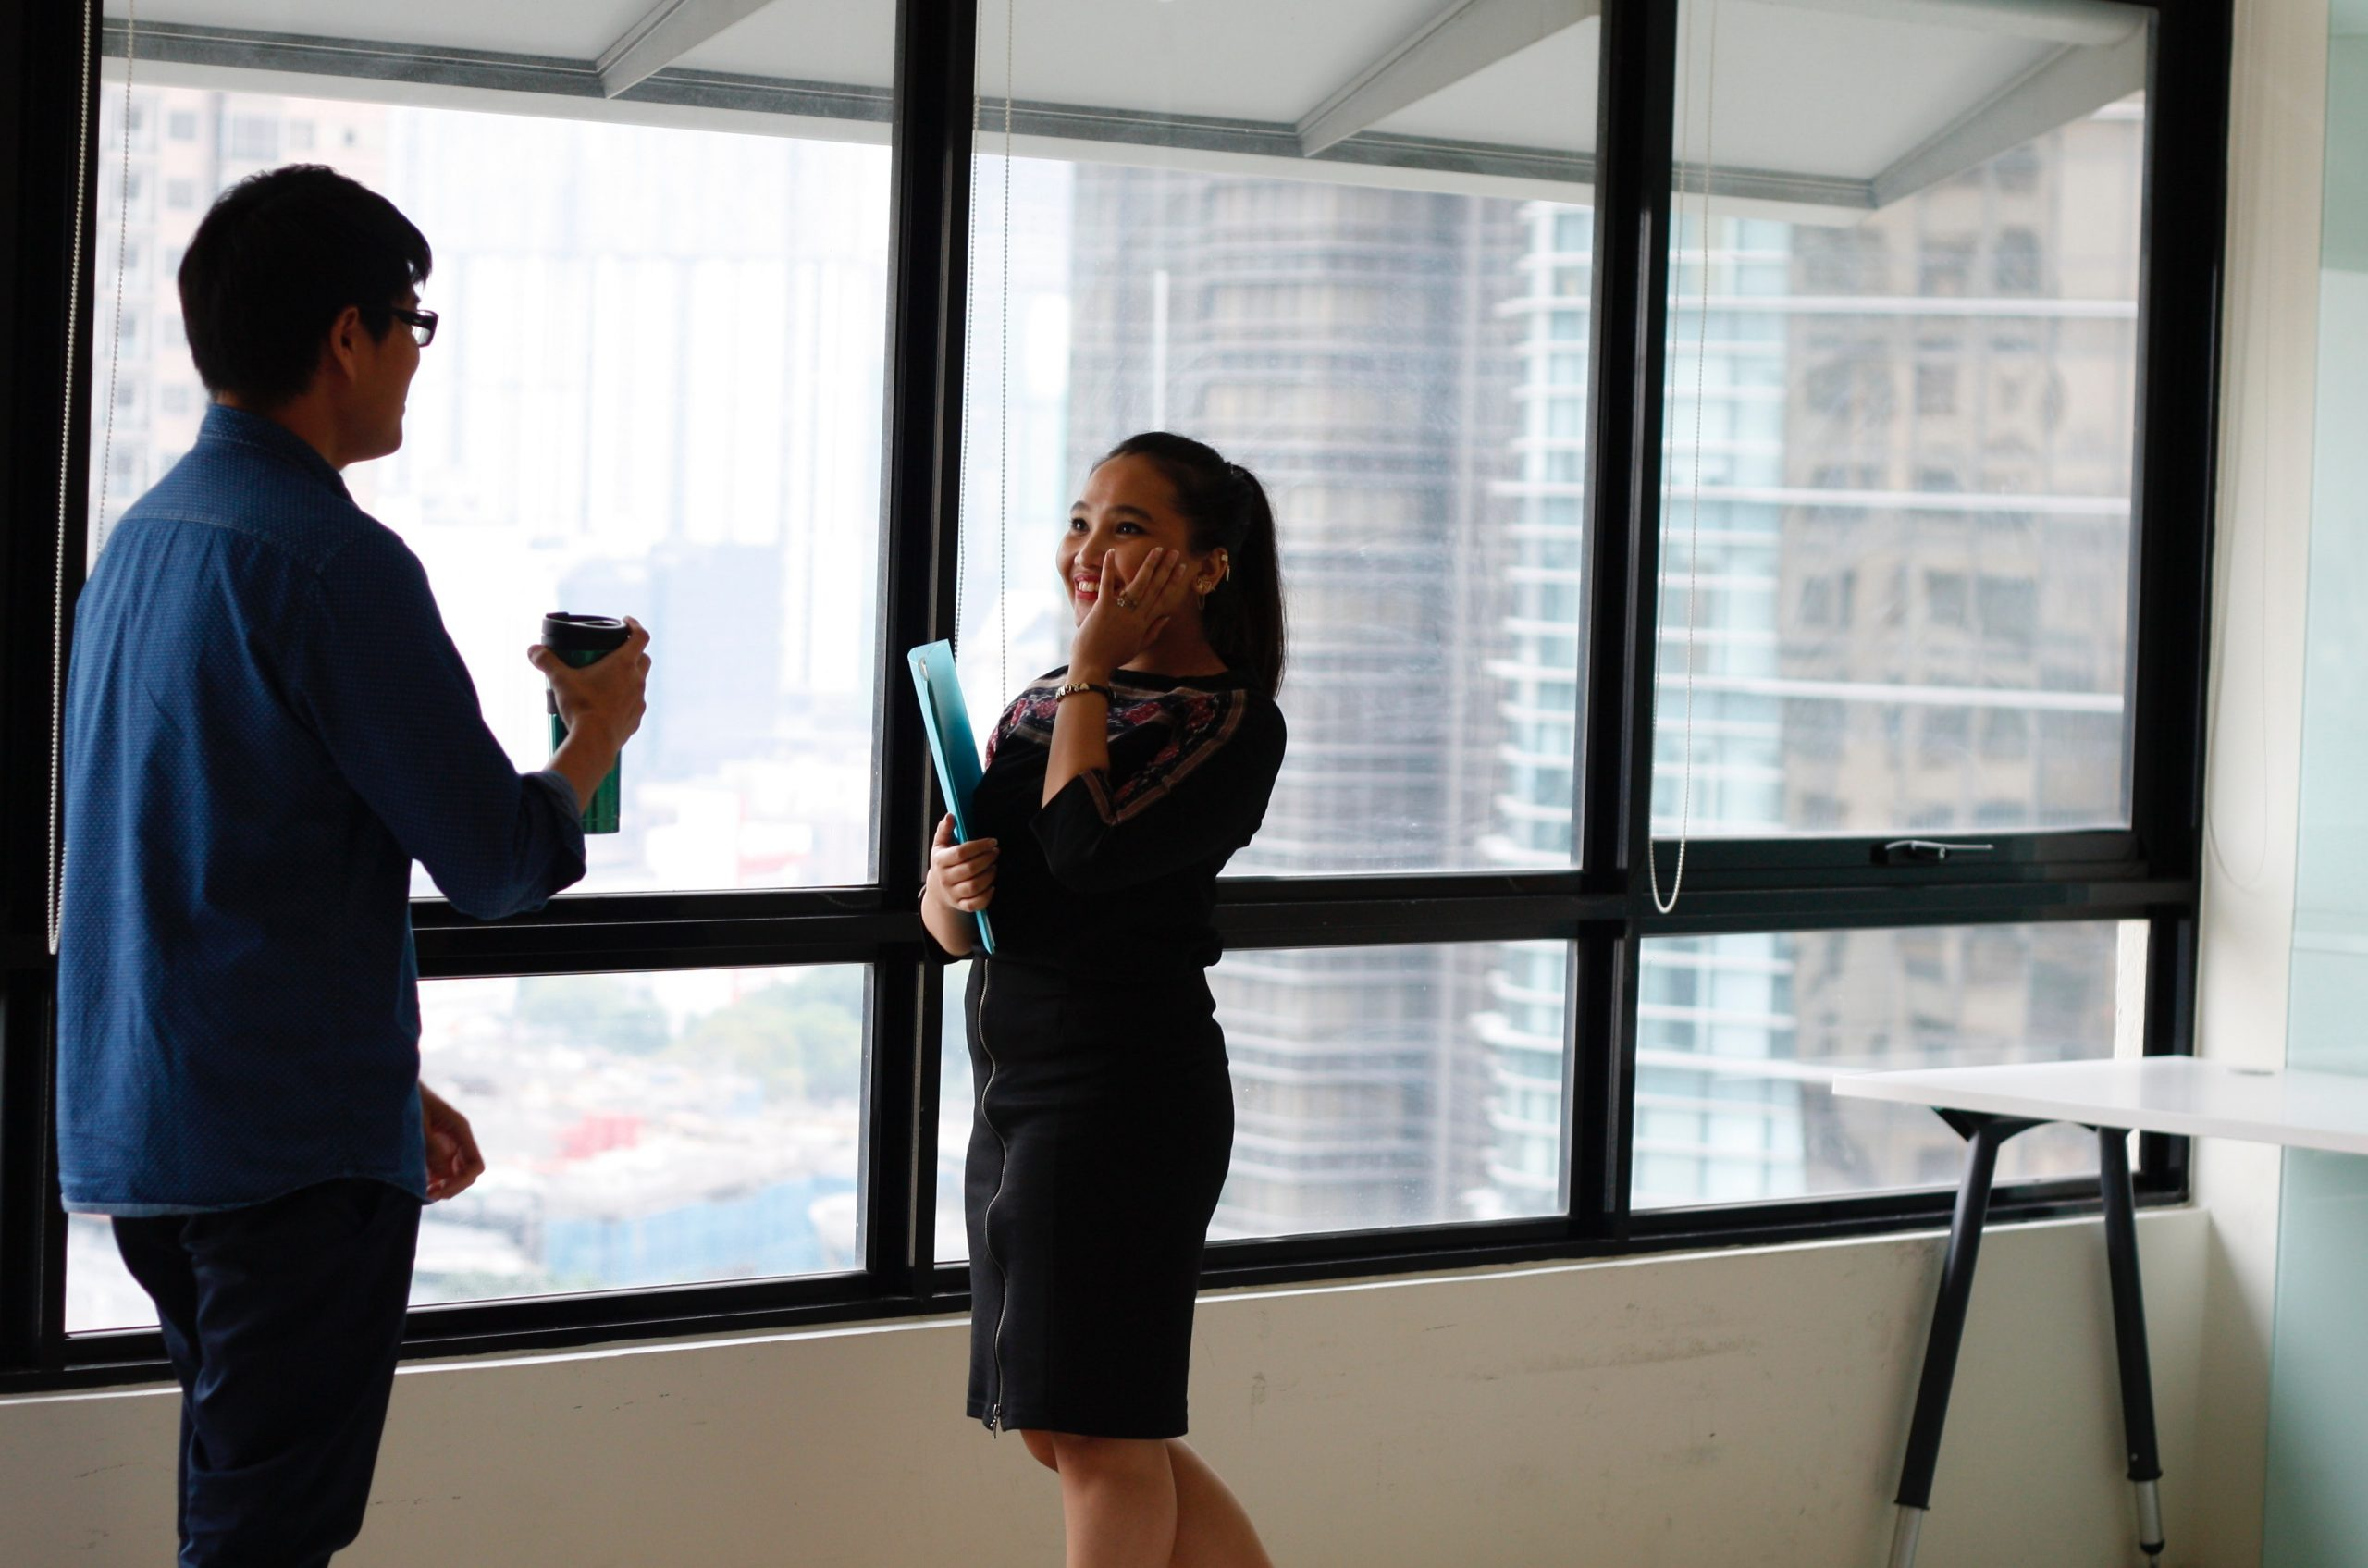 A man and a woman laugh as they talk to each other near the windows in an office